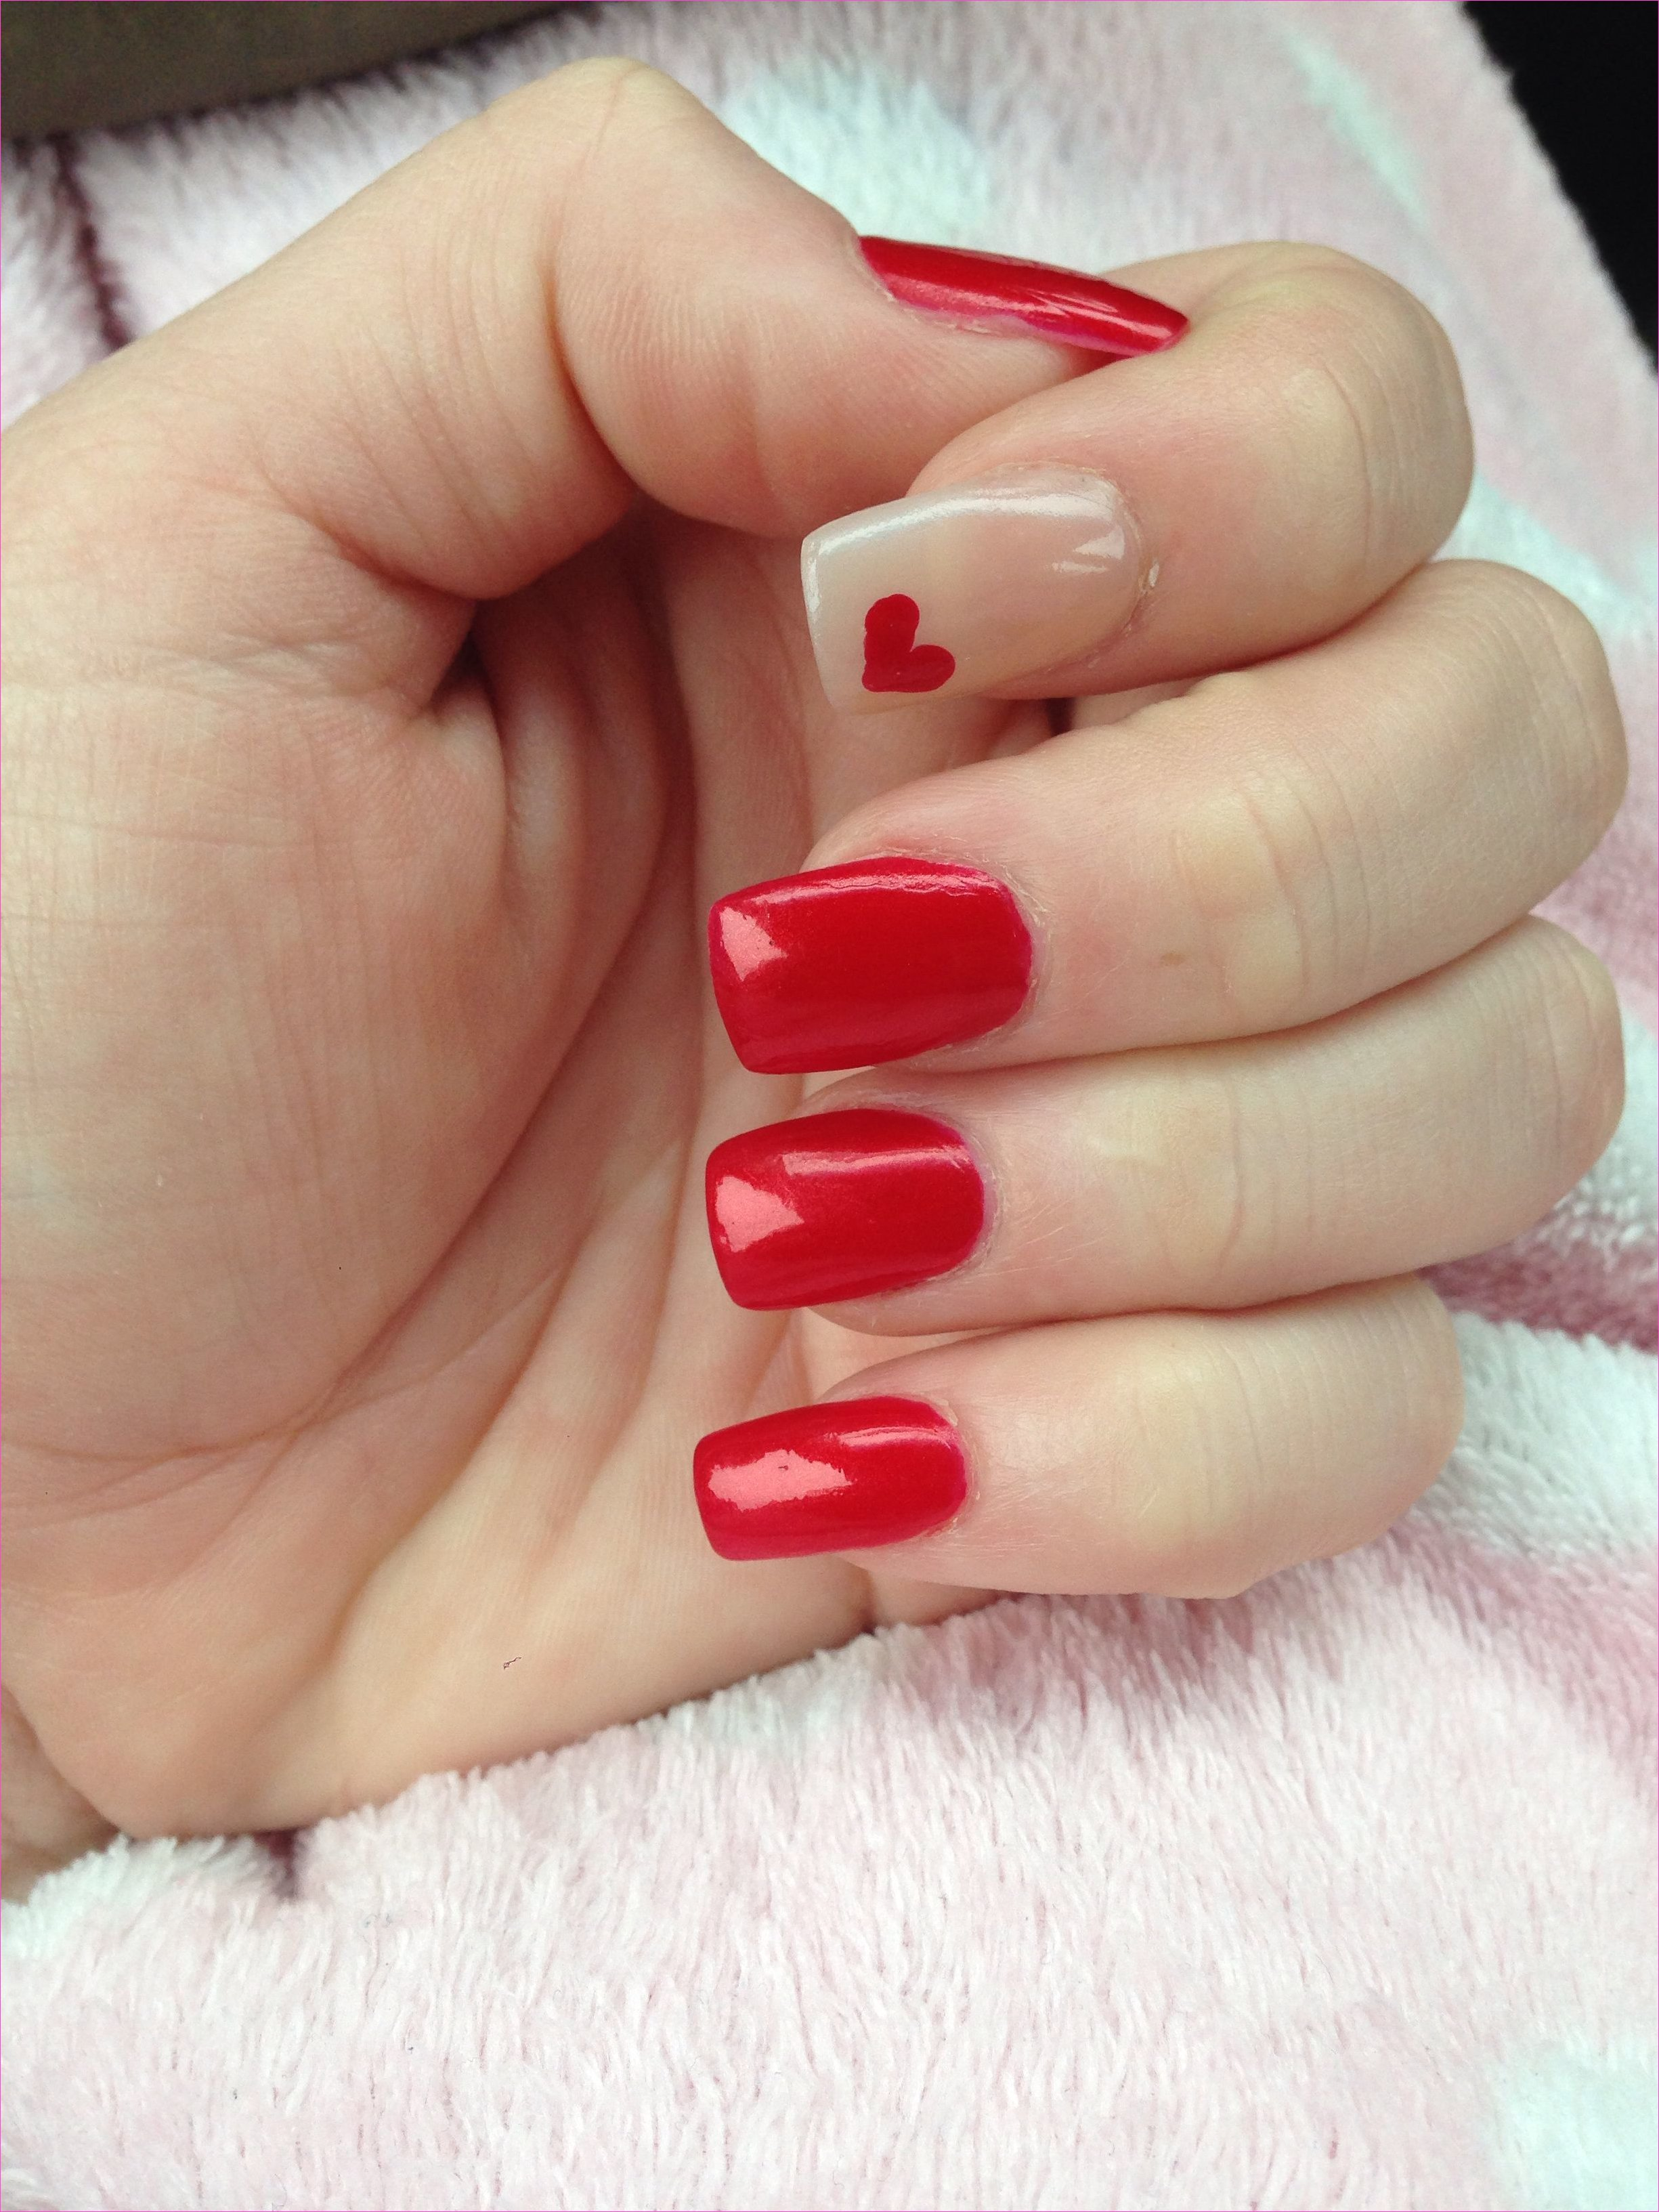 My sweetheart nails | nail designs | Pinterest